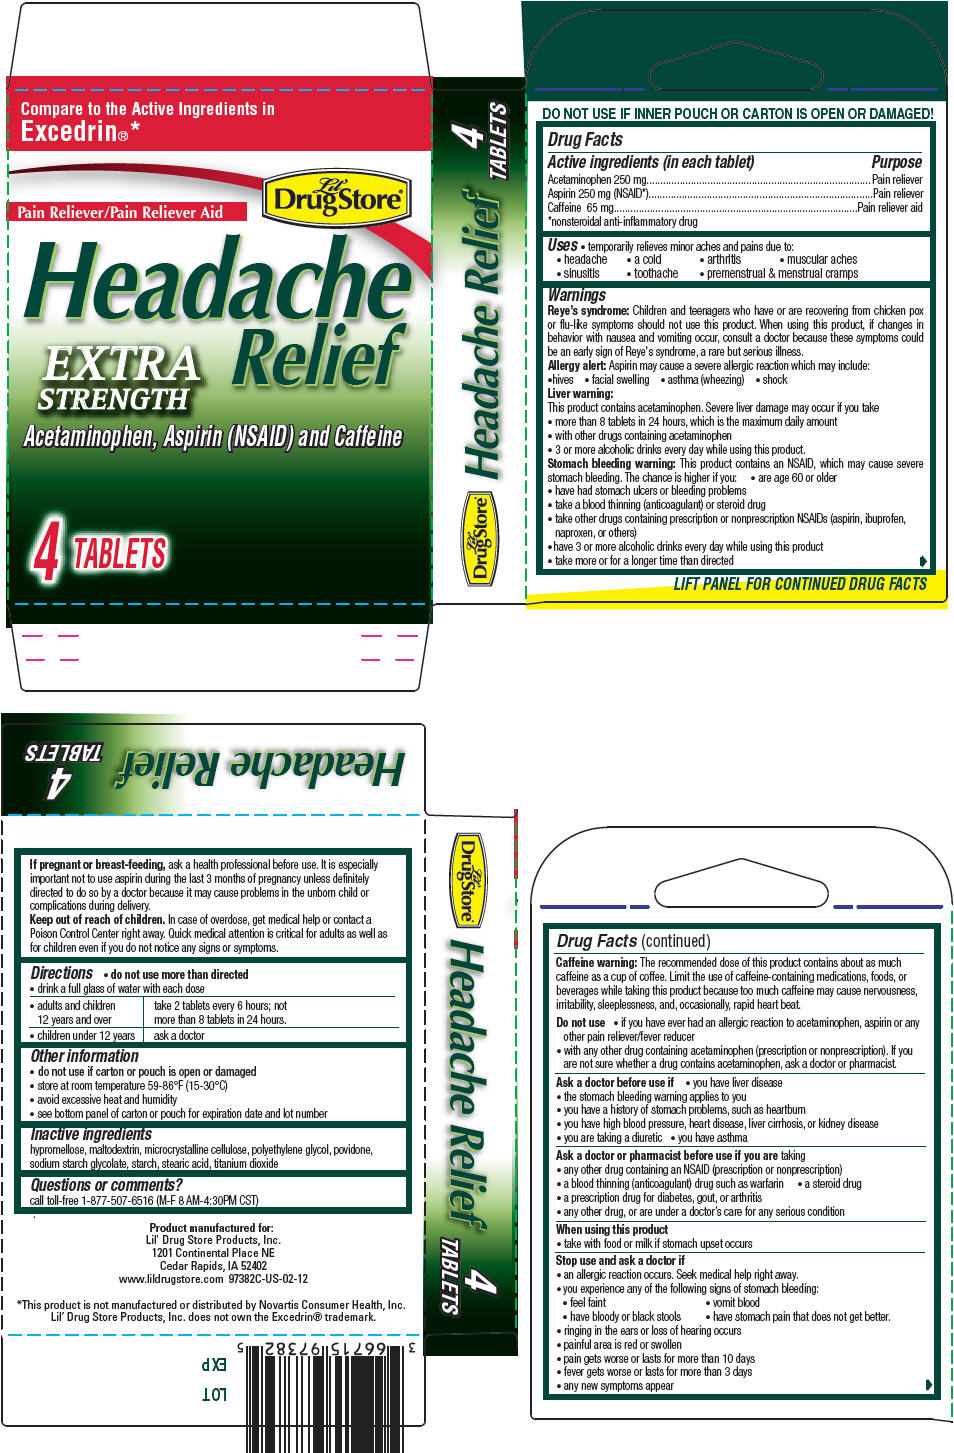 Acetaminophen, Aspirin, and Caffeine - Extra Strength (Lil Drug Store Headache Relief)